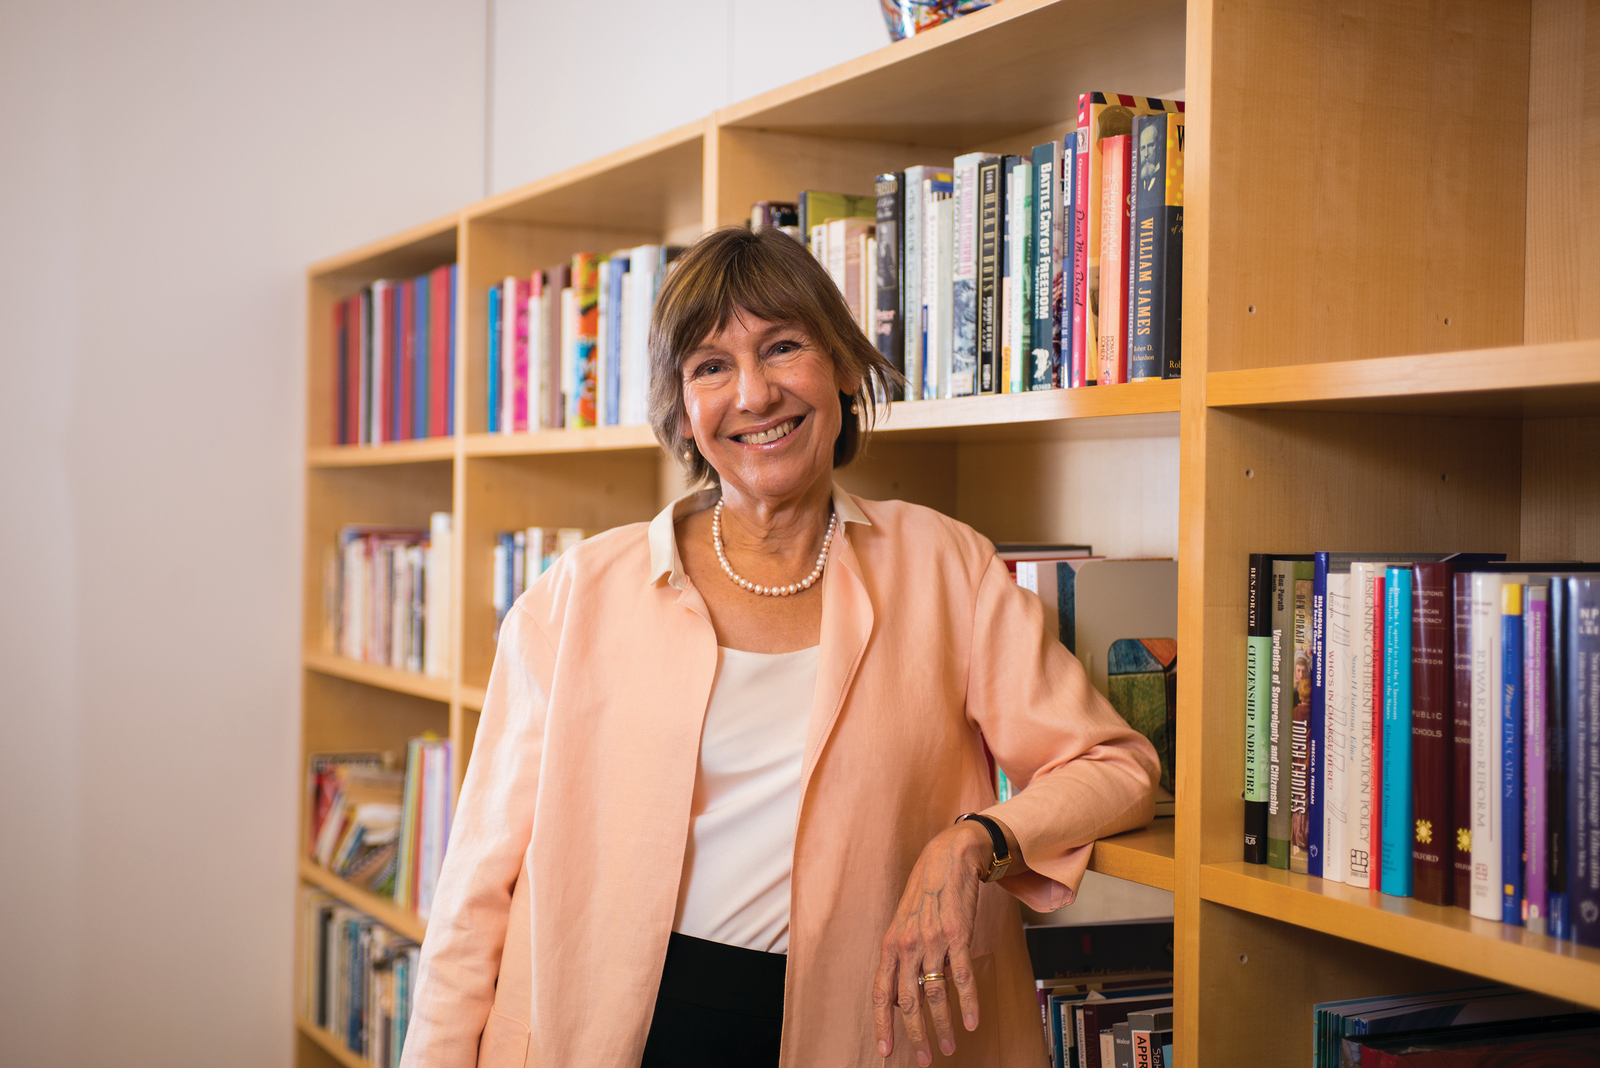 Pam Grossman standing in front of a bookshelf